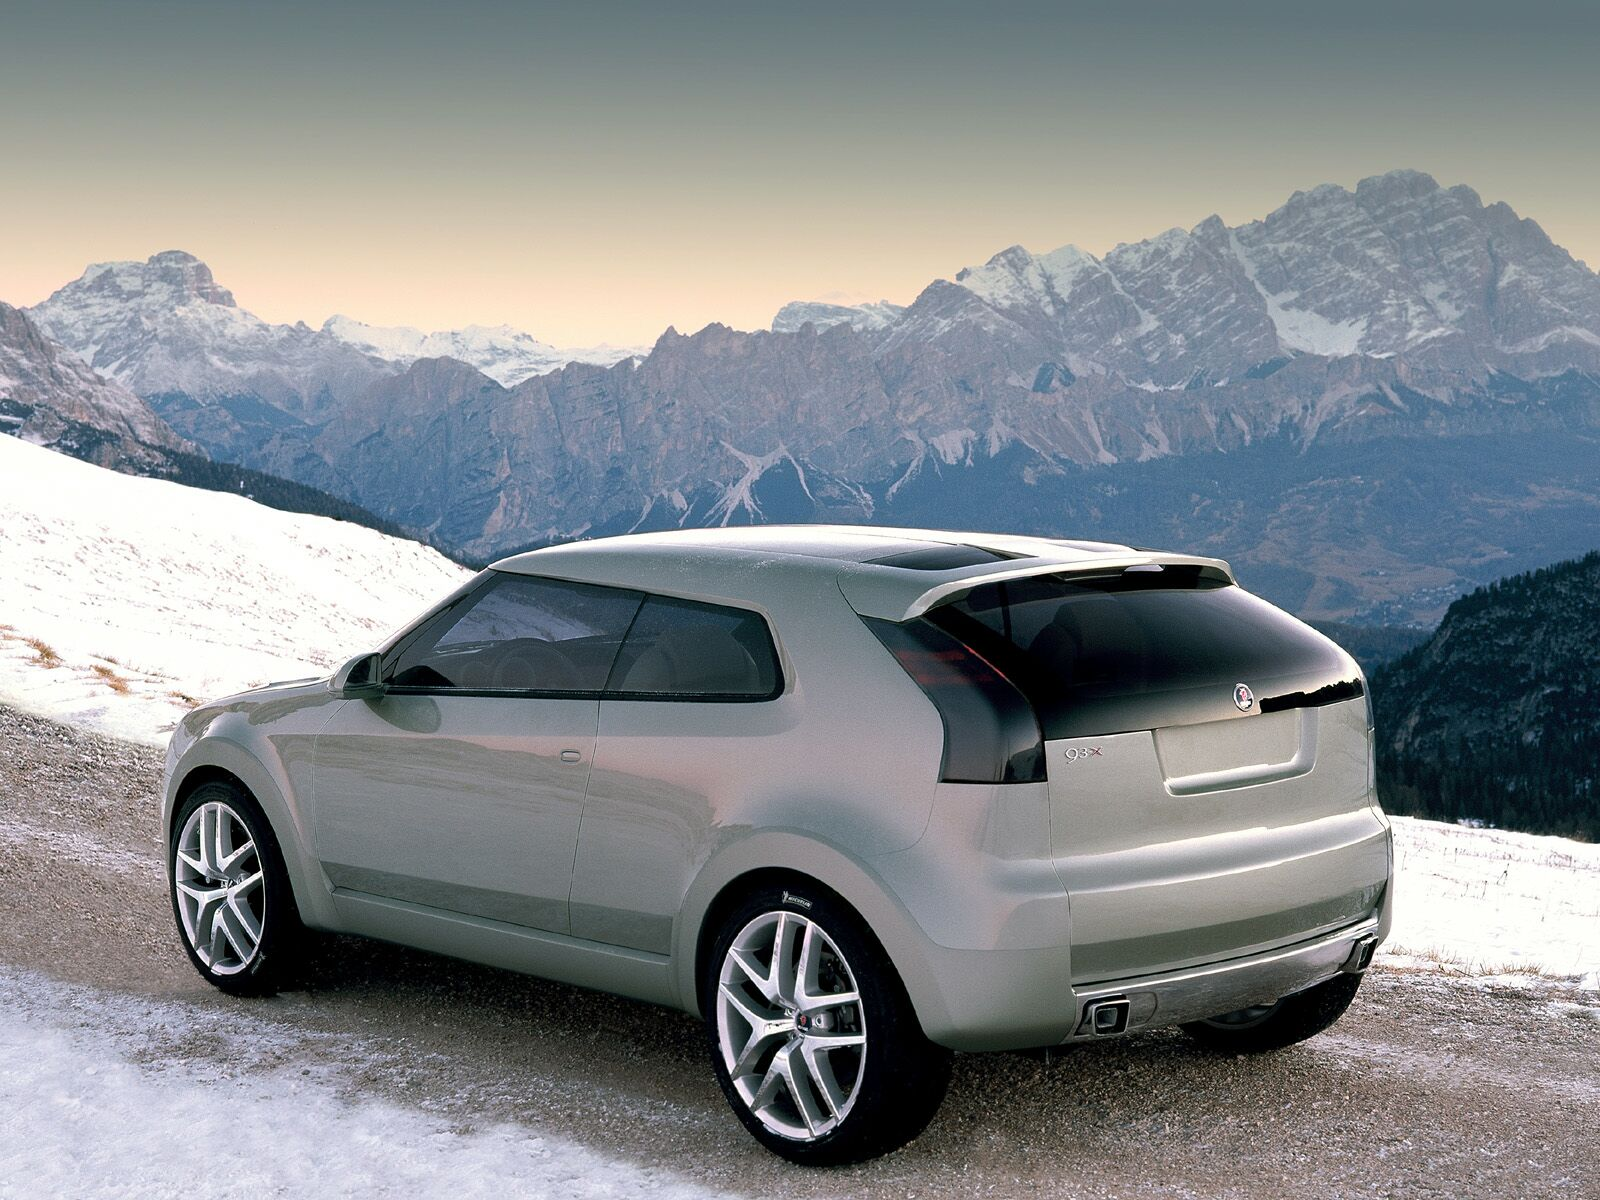 Saab 9 3x Concept 2002 Old Concept Cars